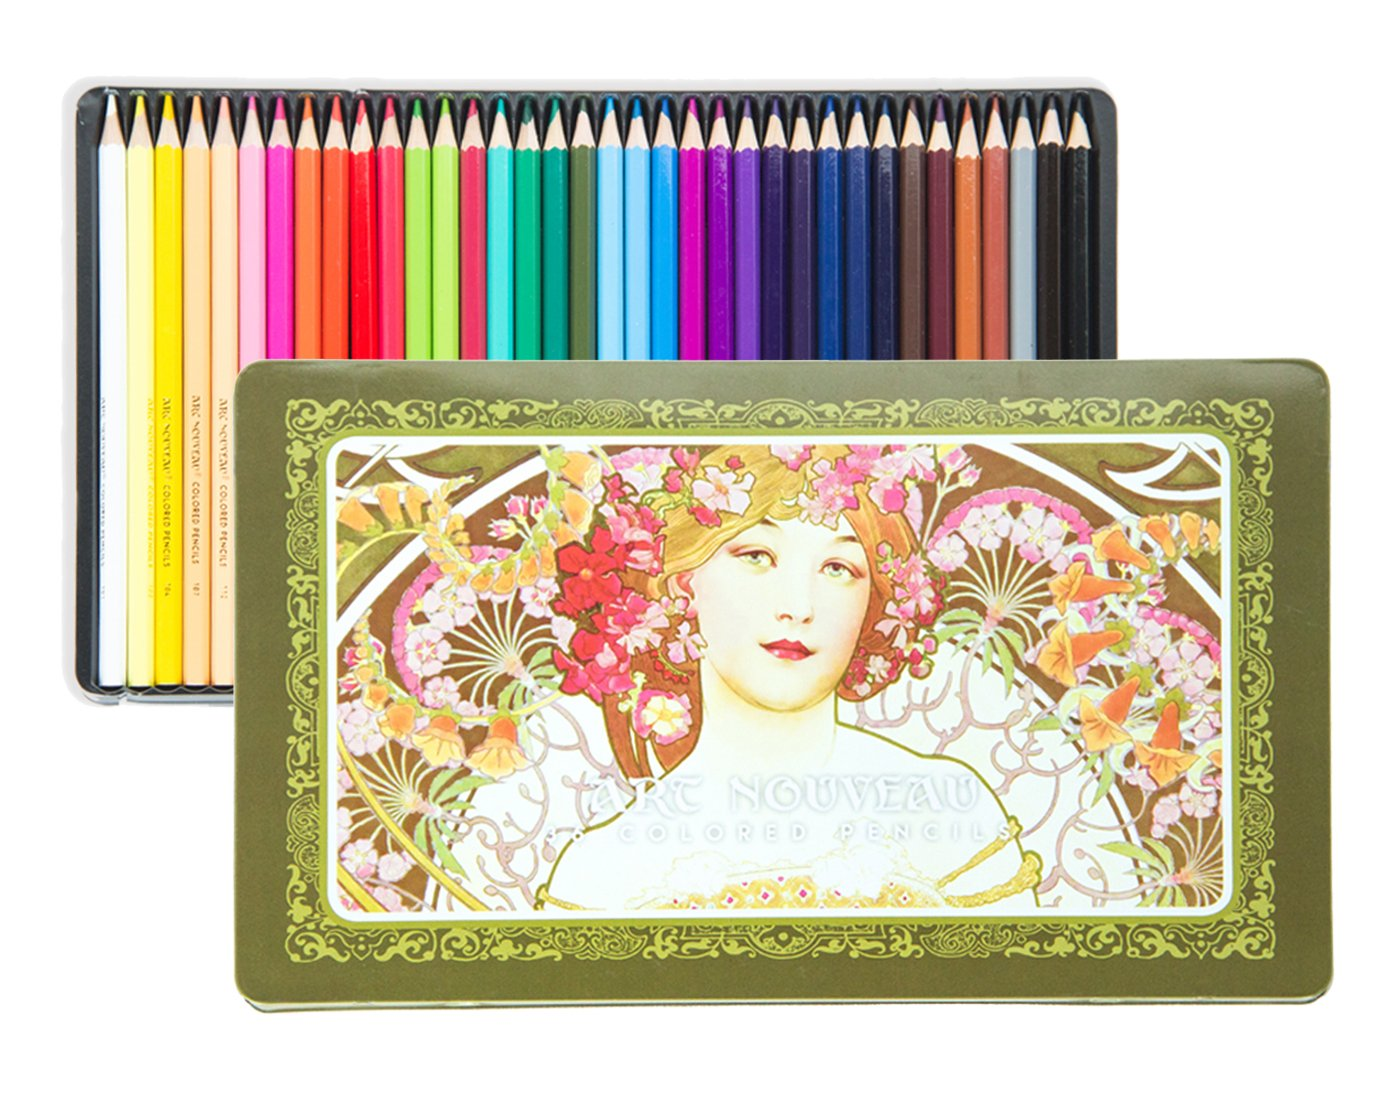 BEGOO Premium 36-Color Set Multicolored Wooden Colored Pencils Soft Core with Cute Metal Tin Case, Vibrant Colors Oily Pencils for Office Schools Art Sketching Coloring Book Drawing Tools Kids Adults